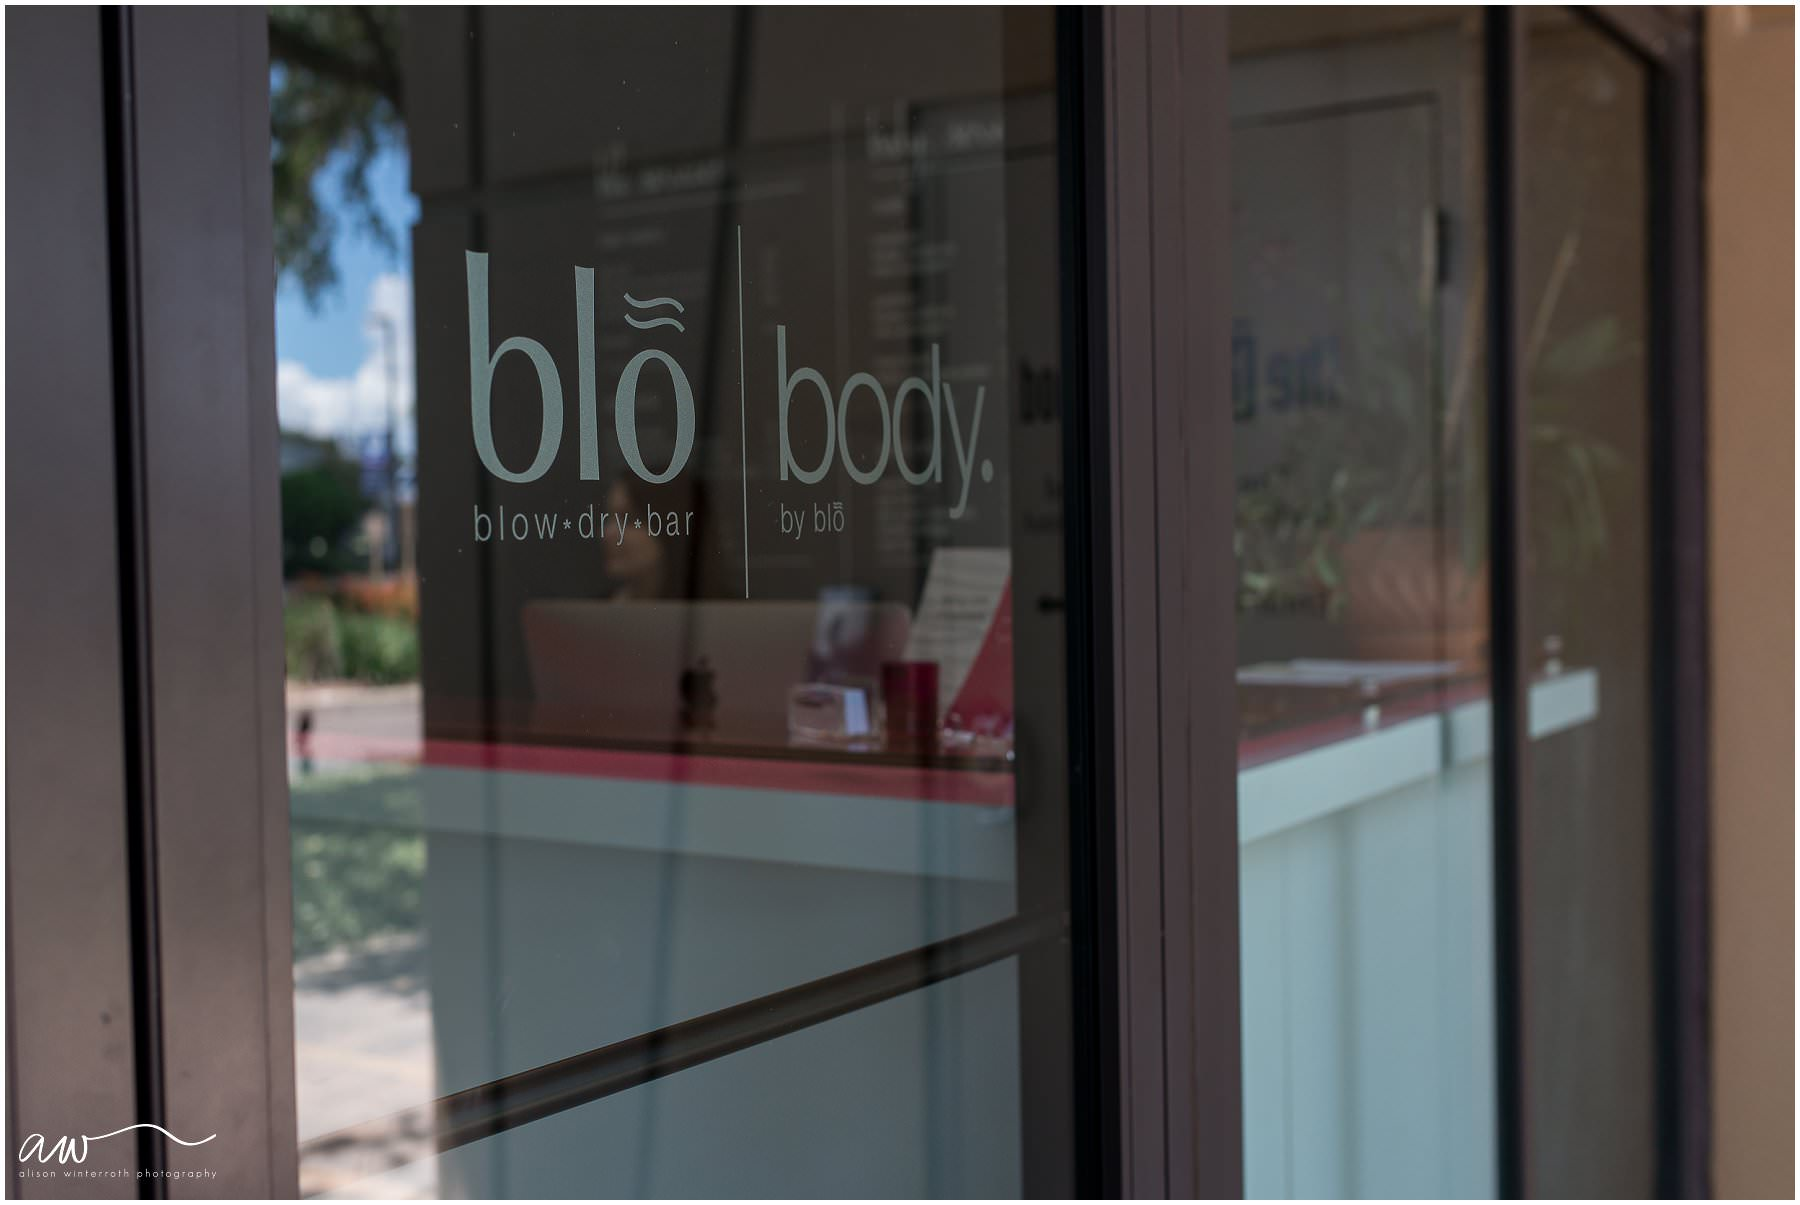 blo blow dry bar and blo body